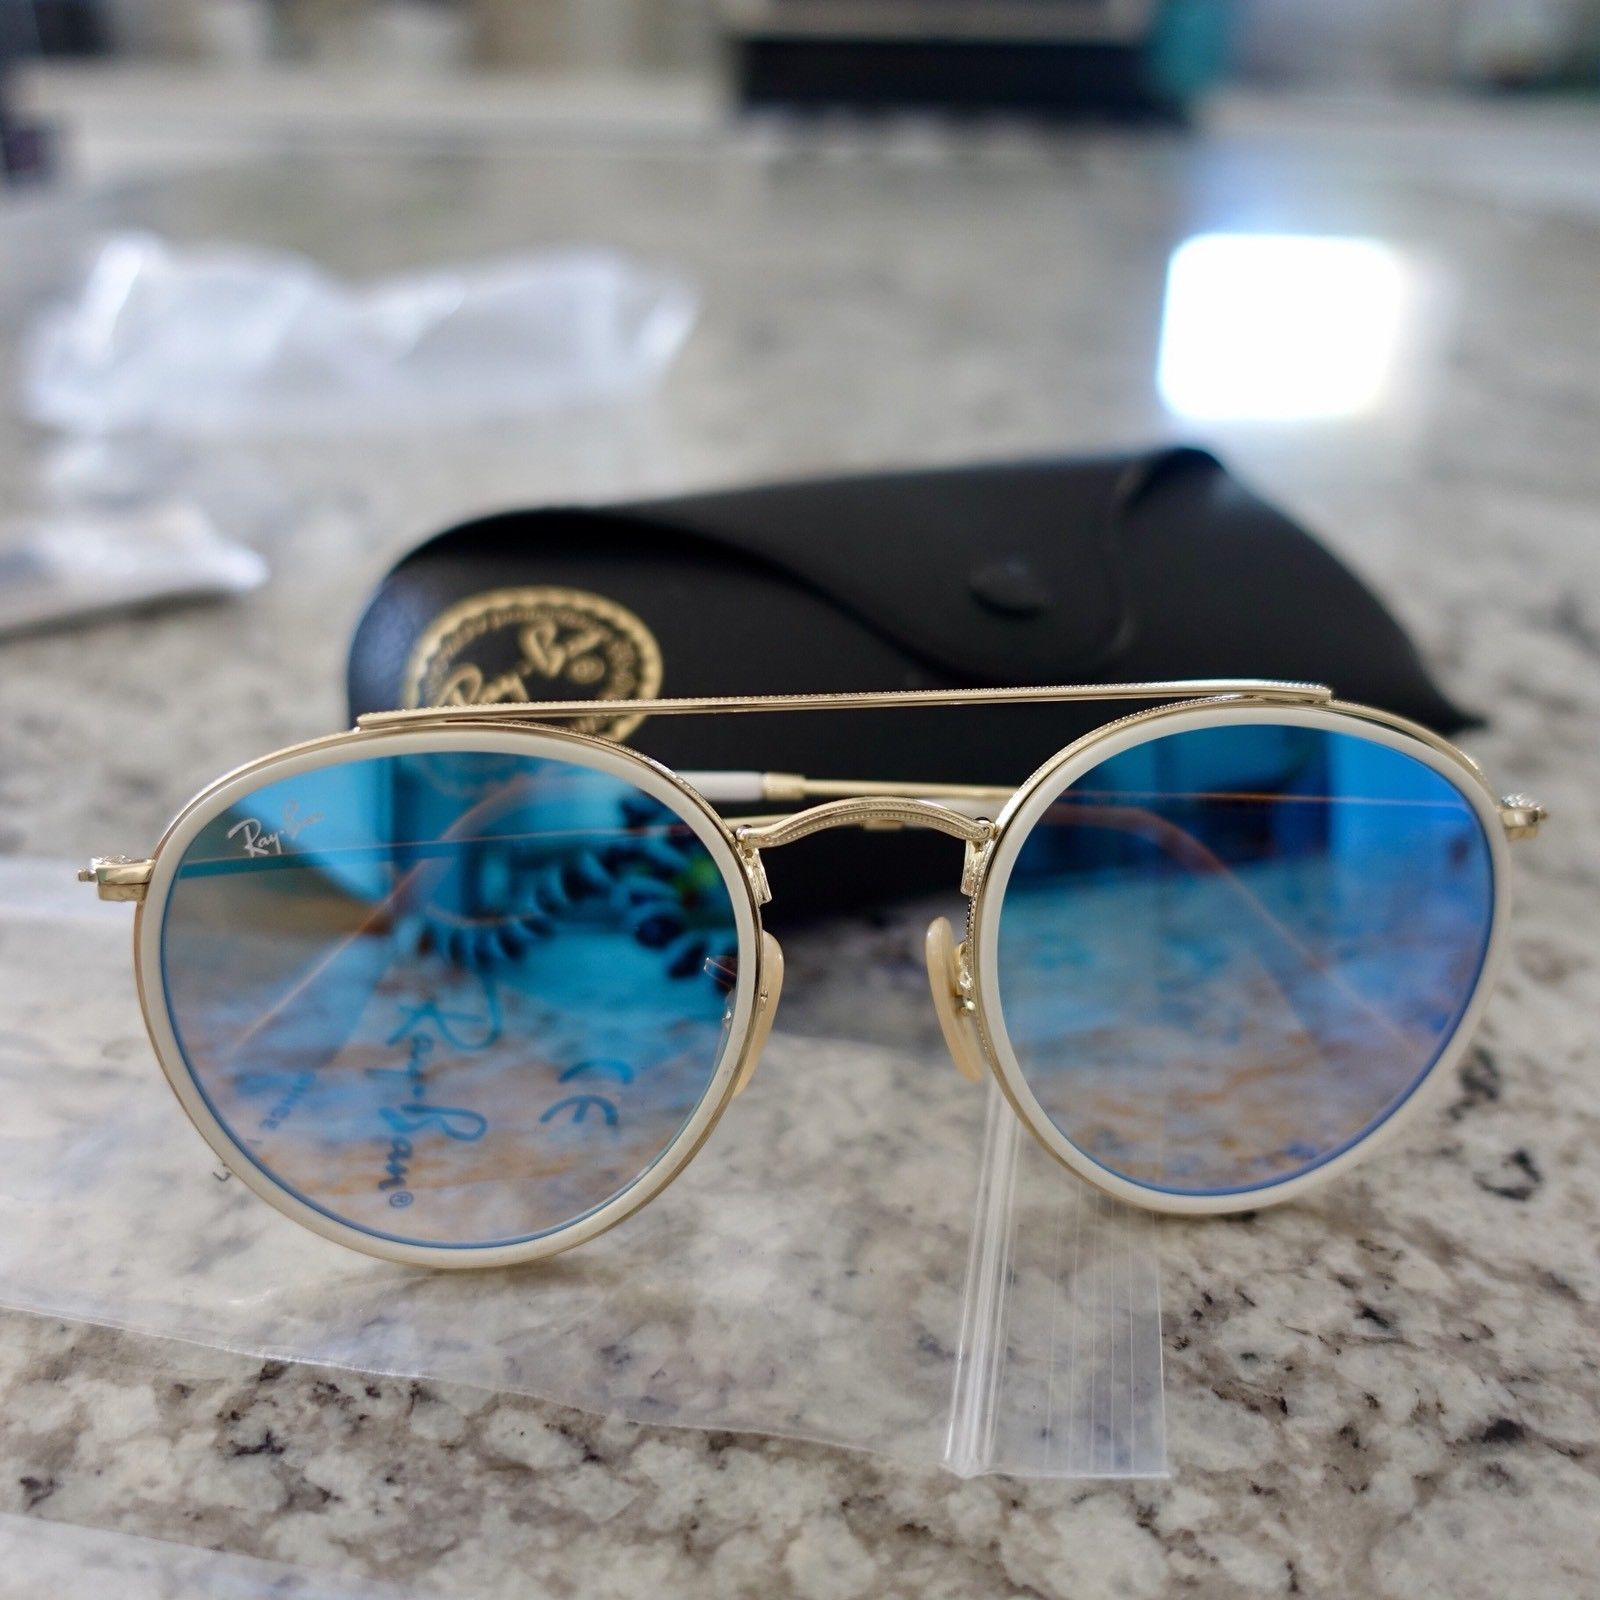 b8e567be49f5 RB3647N 001 4O 51-23 Blue Gradient Flash Ray-Ban Round Double Bridge  Sunglasses